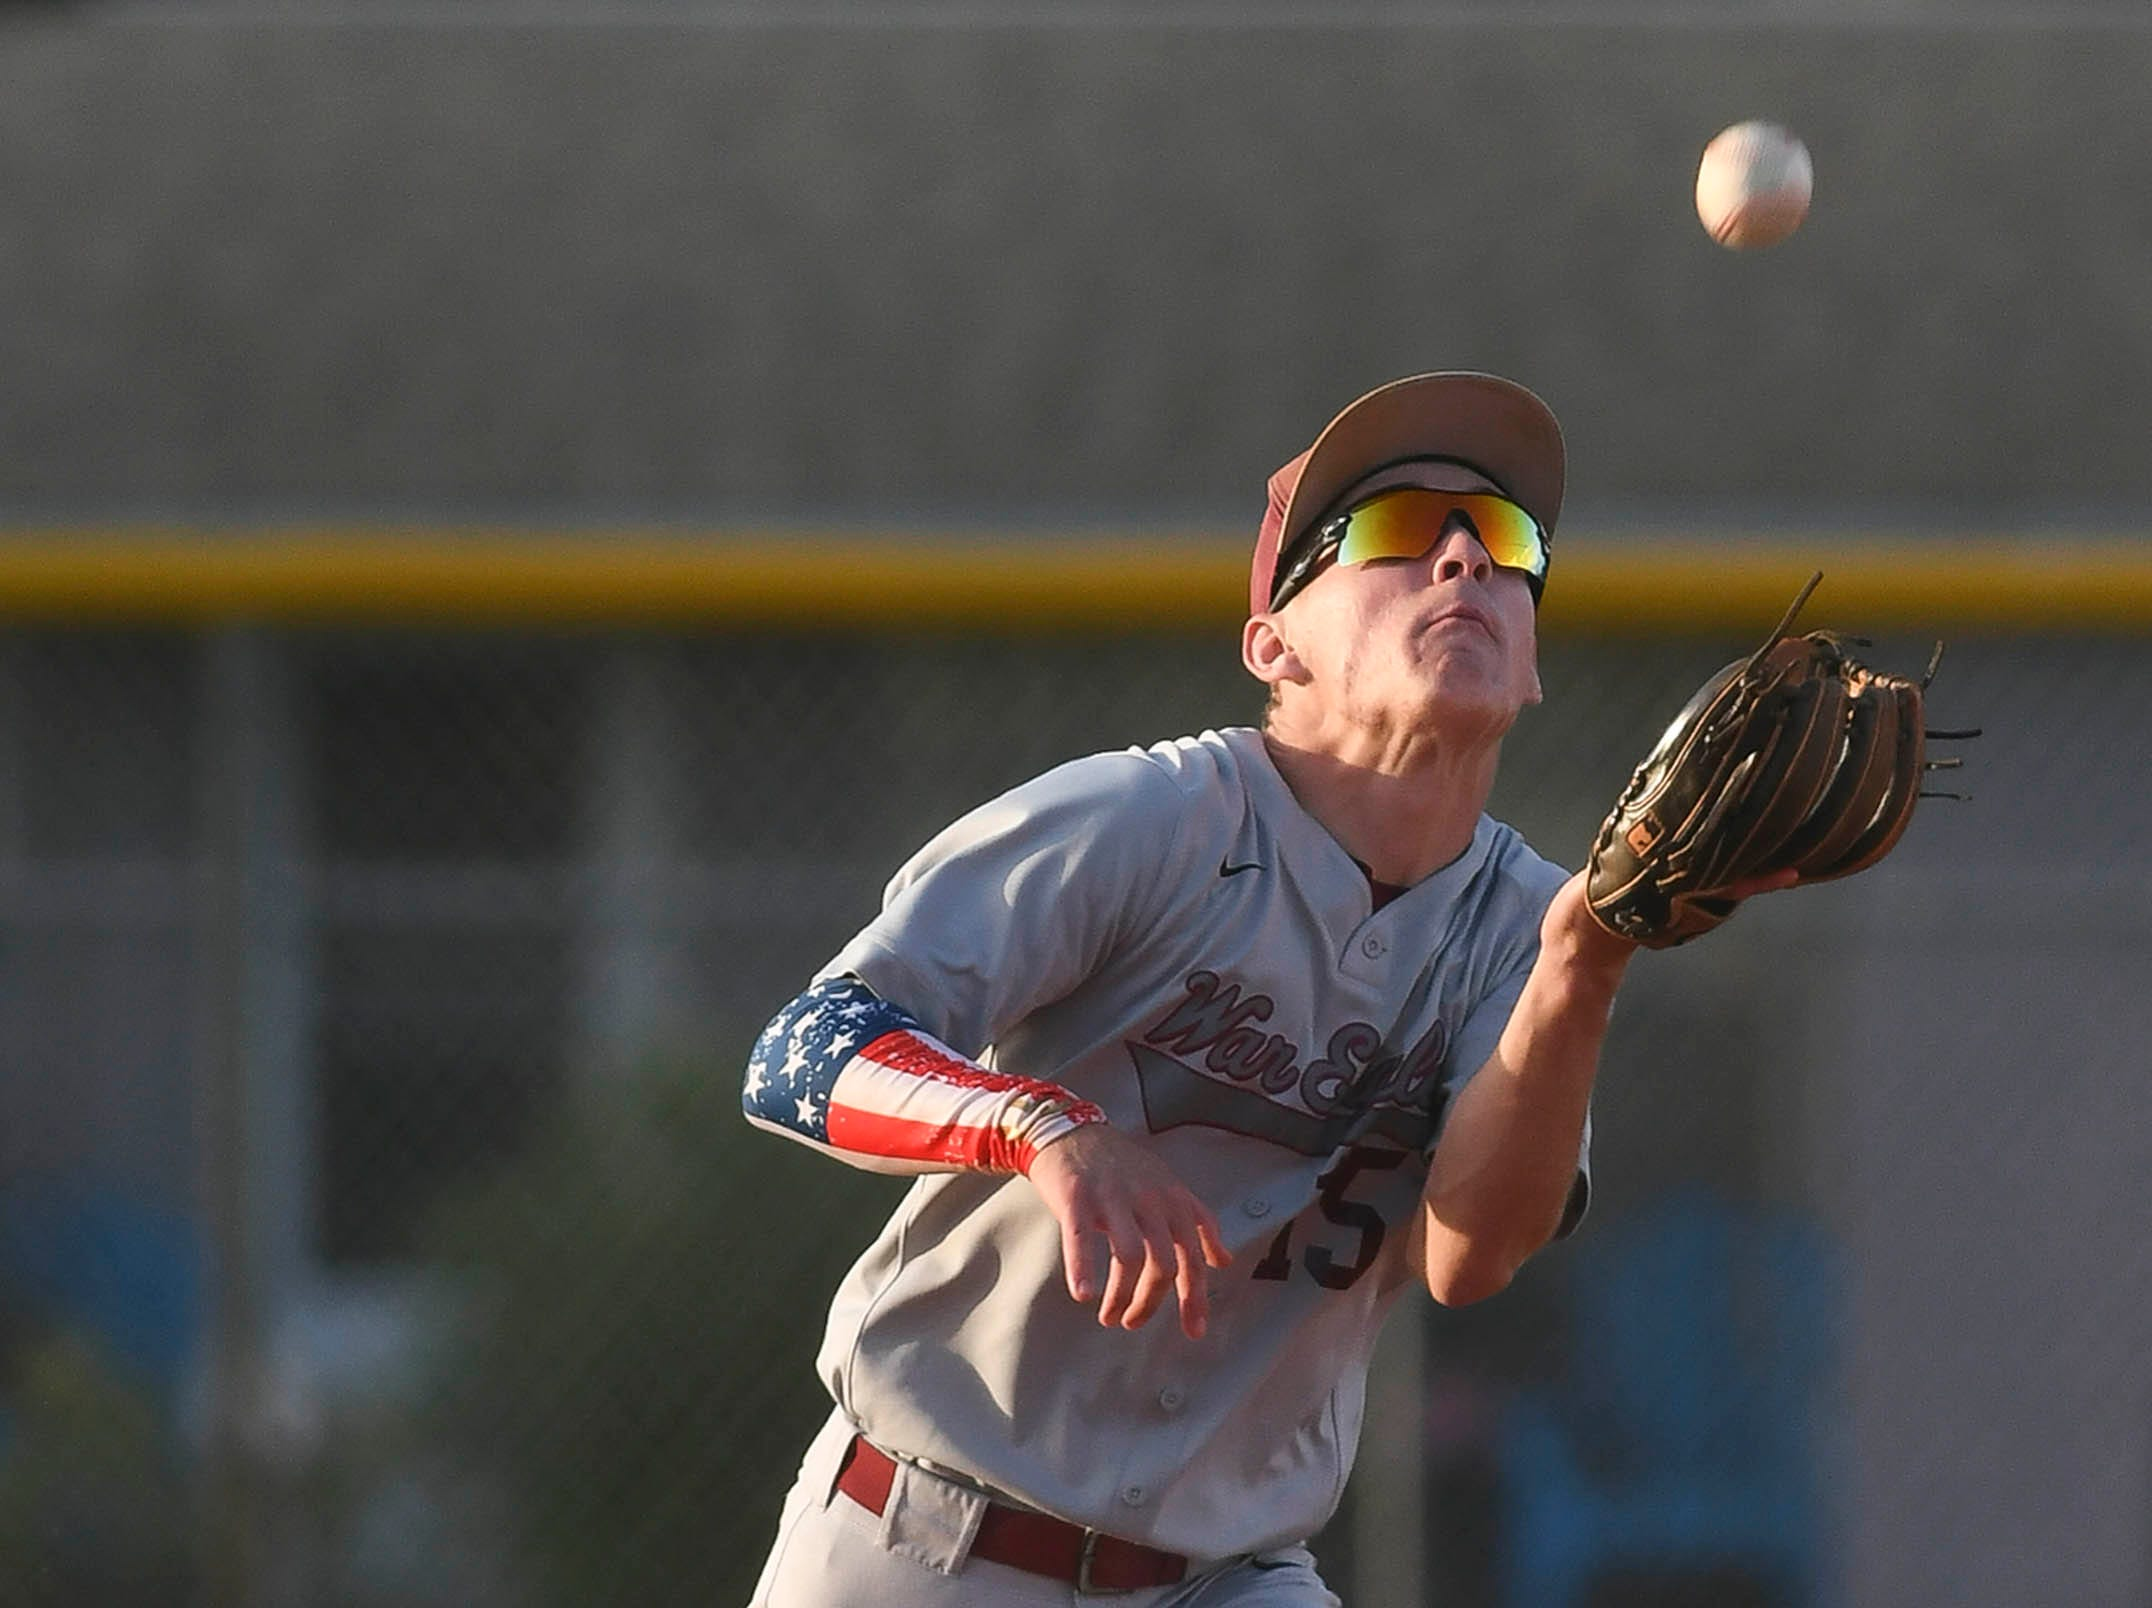 Max Simons of Astronaut chases down a fly ball during Thursday's game in Titusville.